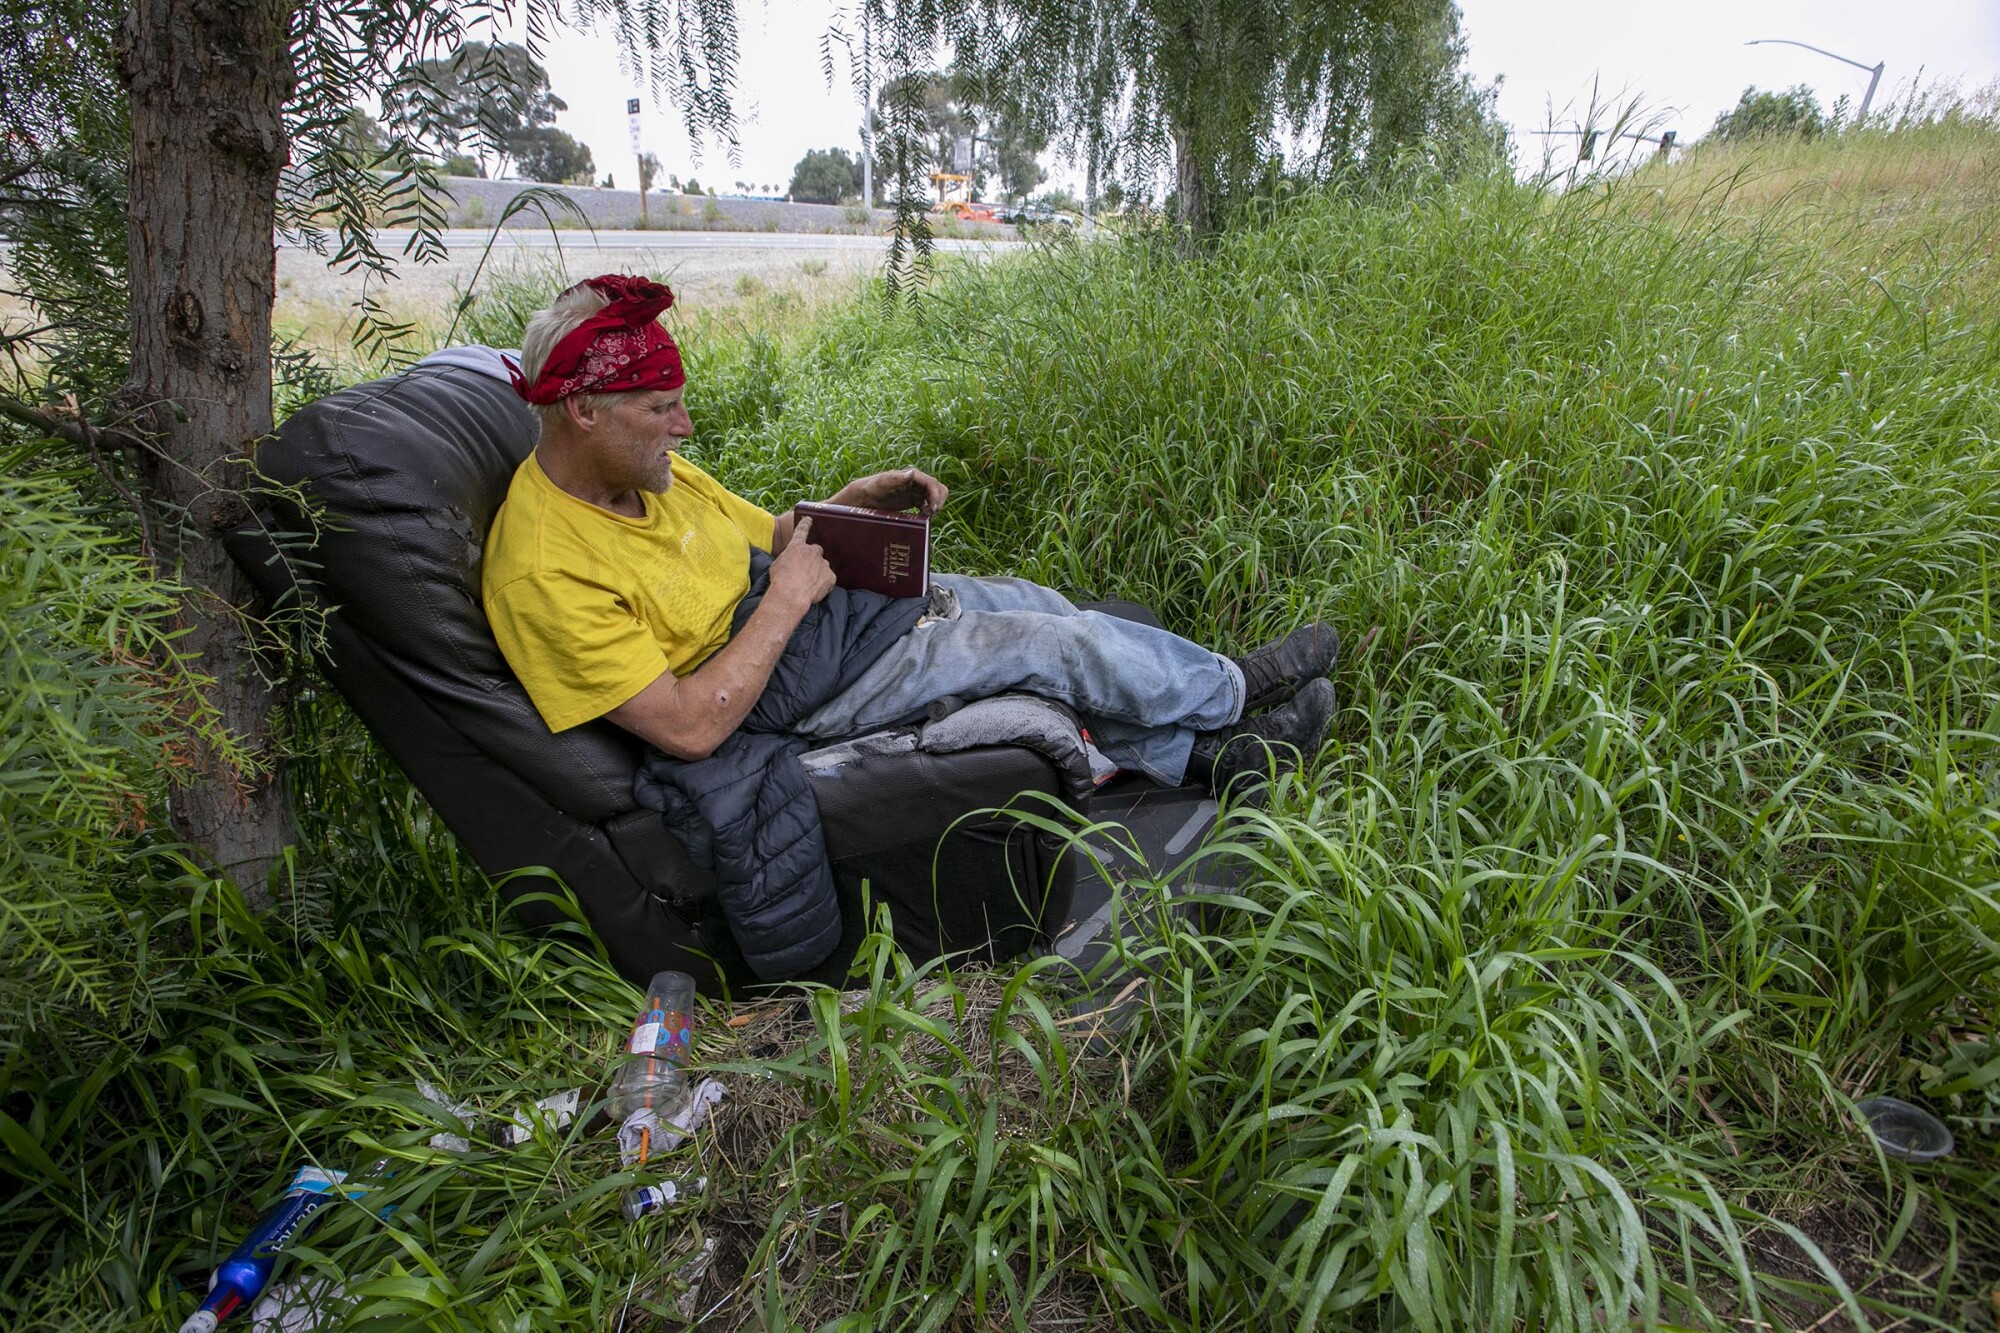 Jacob Nilsen, who is homeless, sat in a chair next to Interstate 805 in National City reading a Bible on Thursday. Outreach workers have been unable to convince him to go to a shelter.